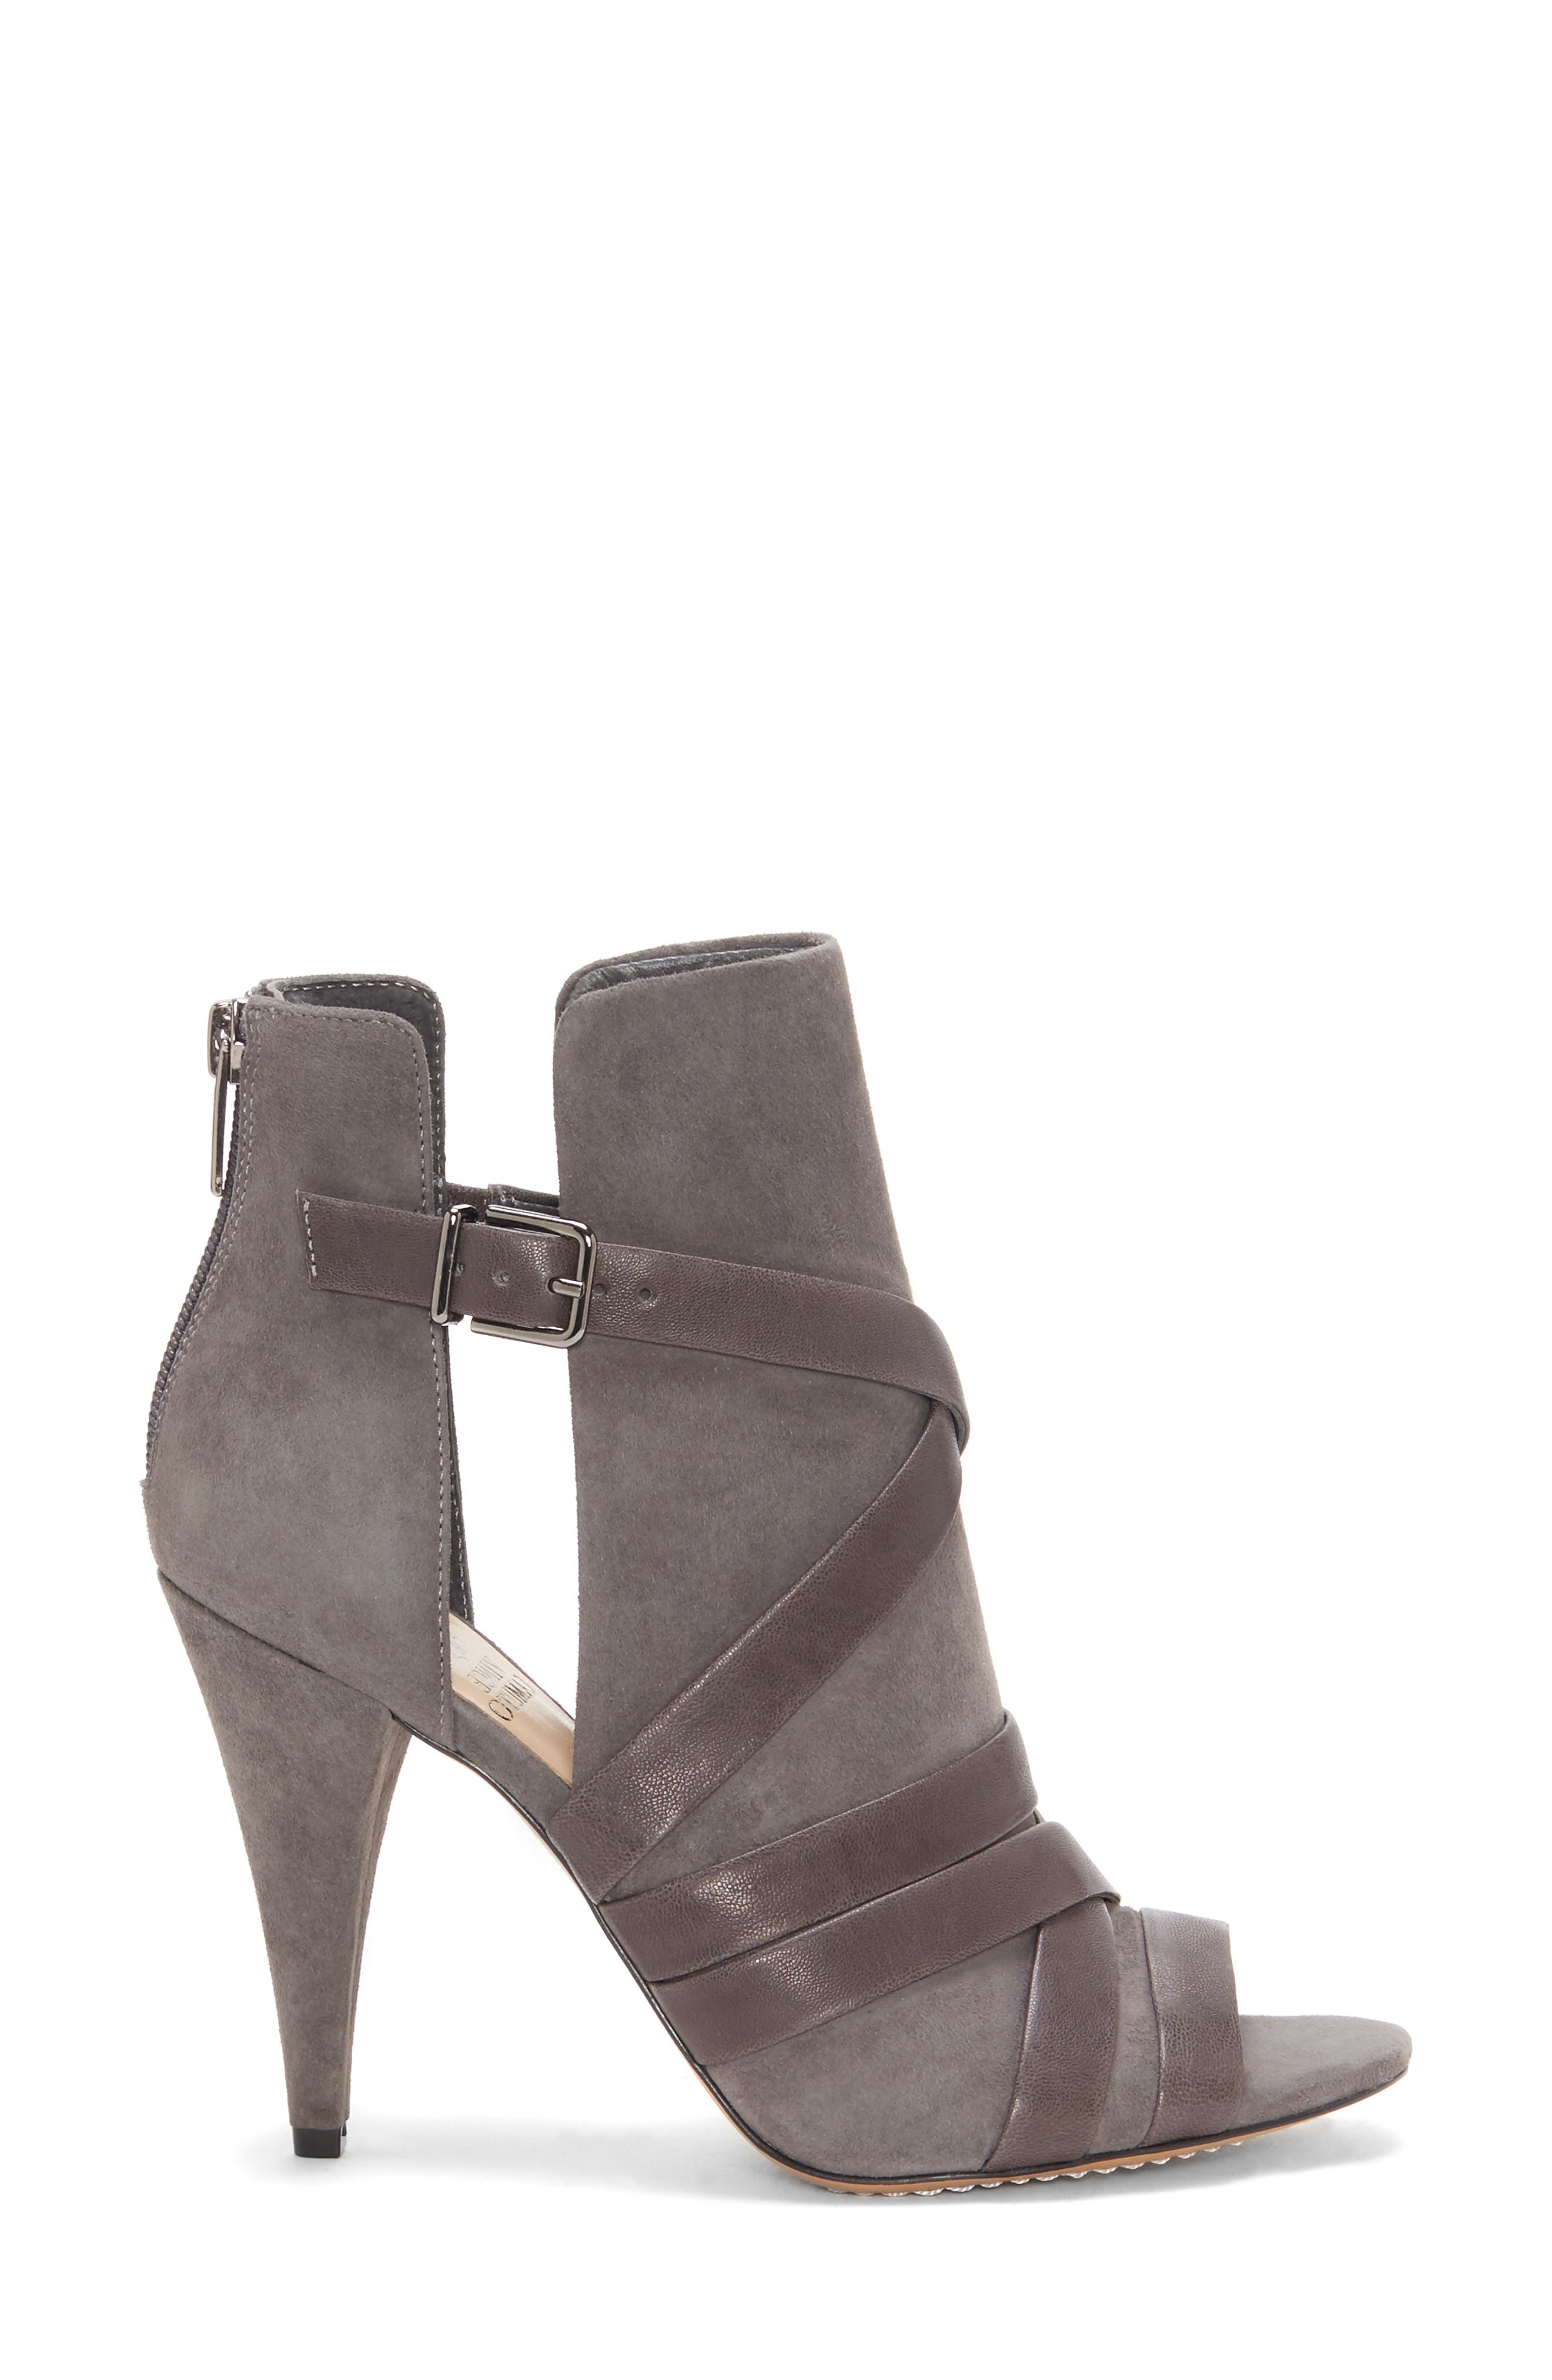 Achika Belted Peep Toe Bootie,                             Alternate thumbnail 3, color,                             POWER GREY LEATHER